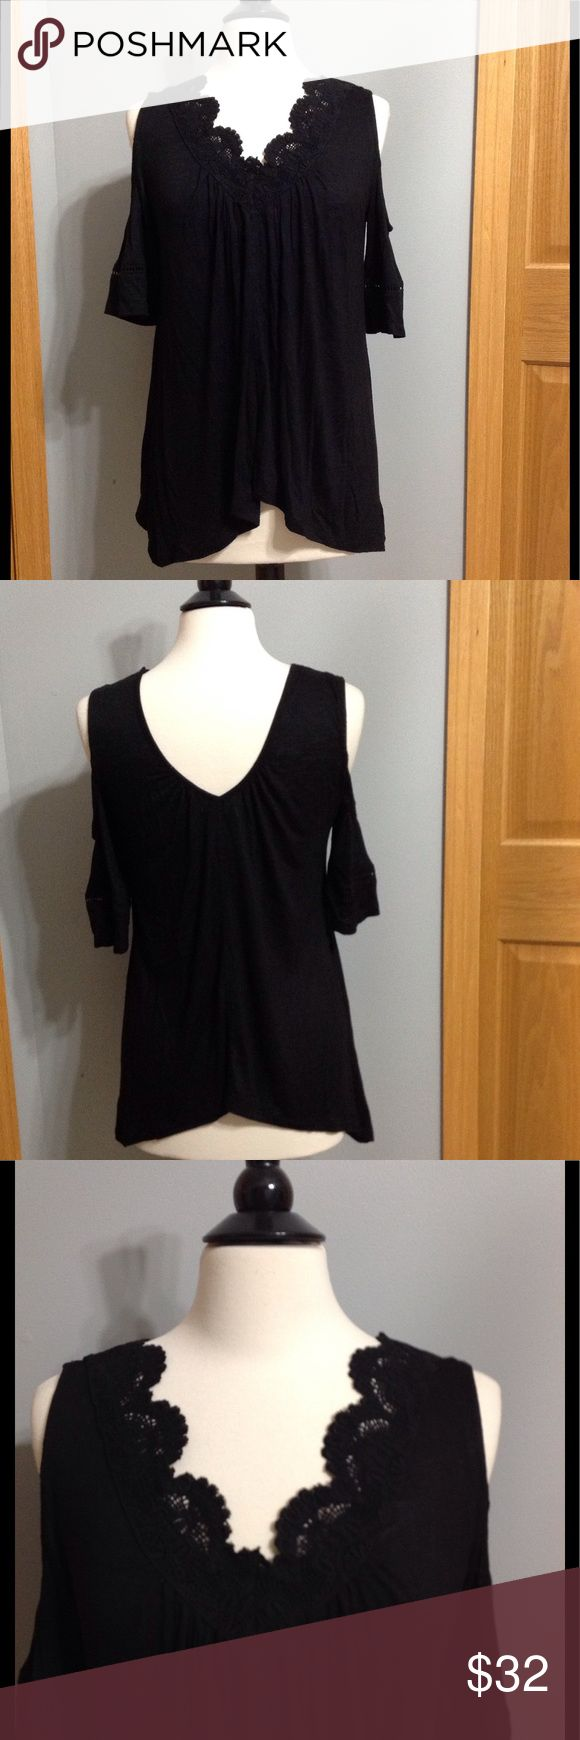 🎉🎉Gorgeous Black Cold-Shoulder Top NWT Lace Trimmed V-Neck Top. High-Low Hem. Gathered Neckline. This Top sold out online and in store in just a few days. I was desperate to get it and I got it online, but it doesn't fit. Grrrr! Stretchy fabric, 95% Rayon 5% Spandex. Maurices Tops Blouses